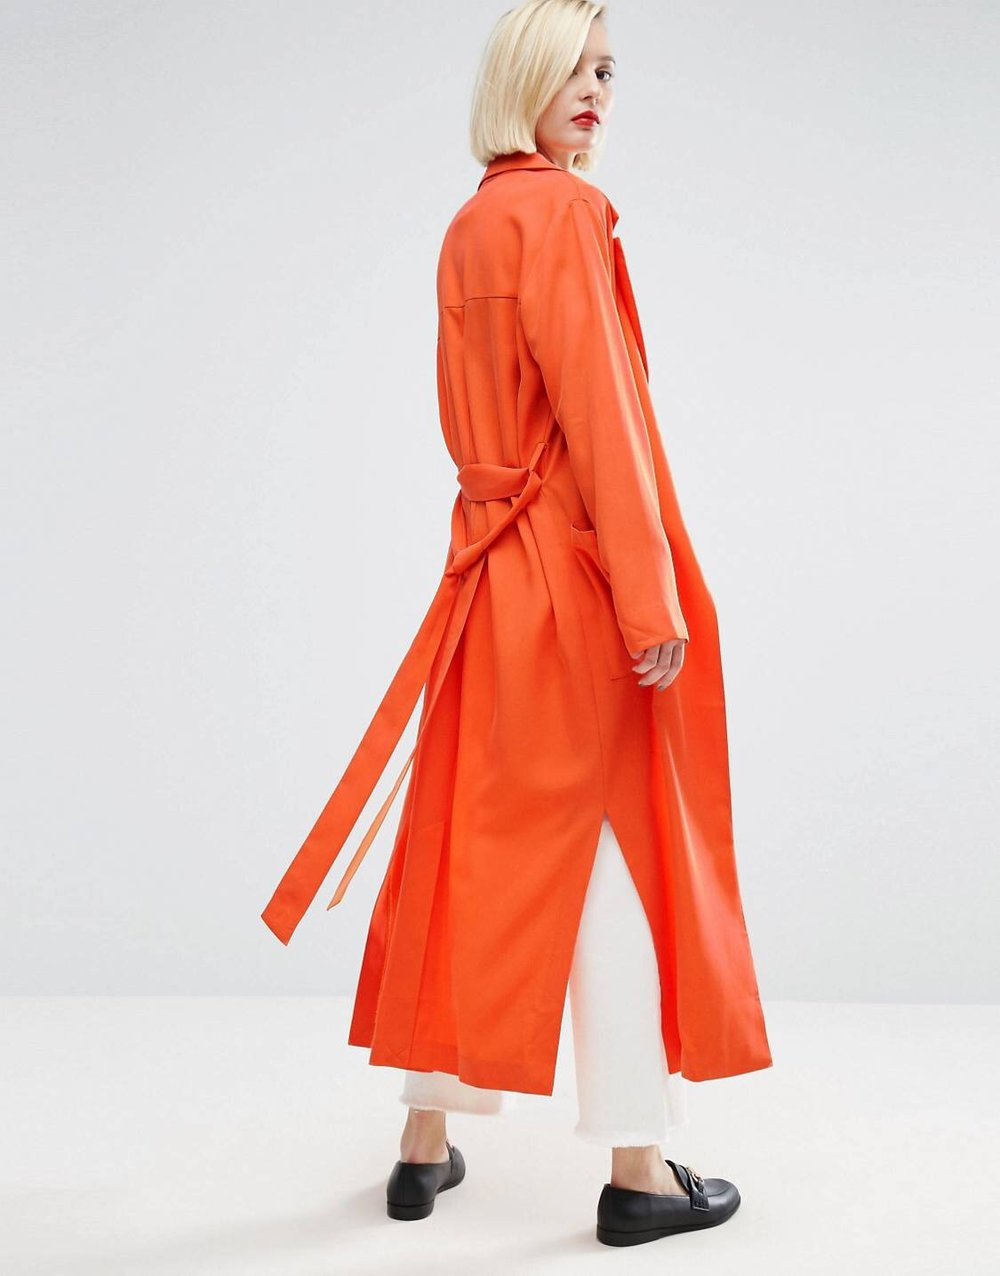 £30 ASOS Soft Drape Kimono - Erm, This is a duster, but okayyy.